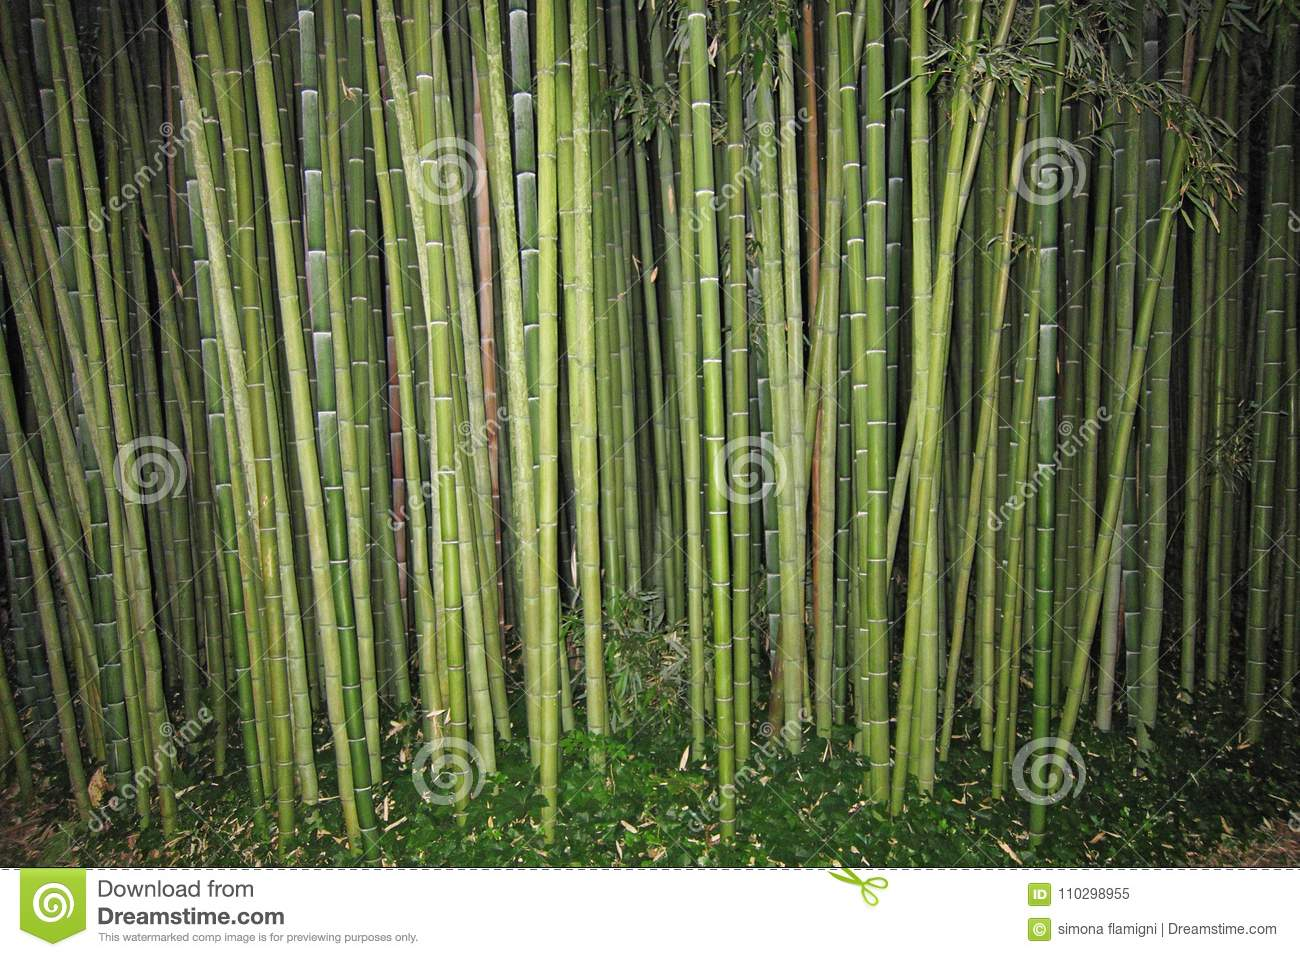 Bamboo Evergreen Perennial Flowering Plants Stock Image Image Of